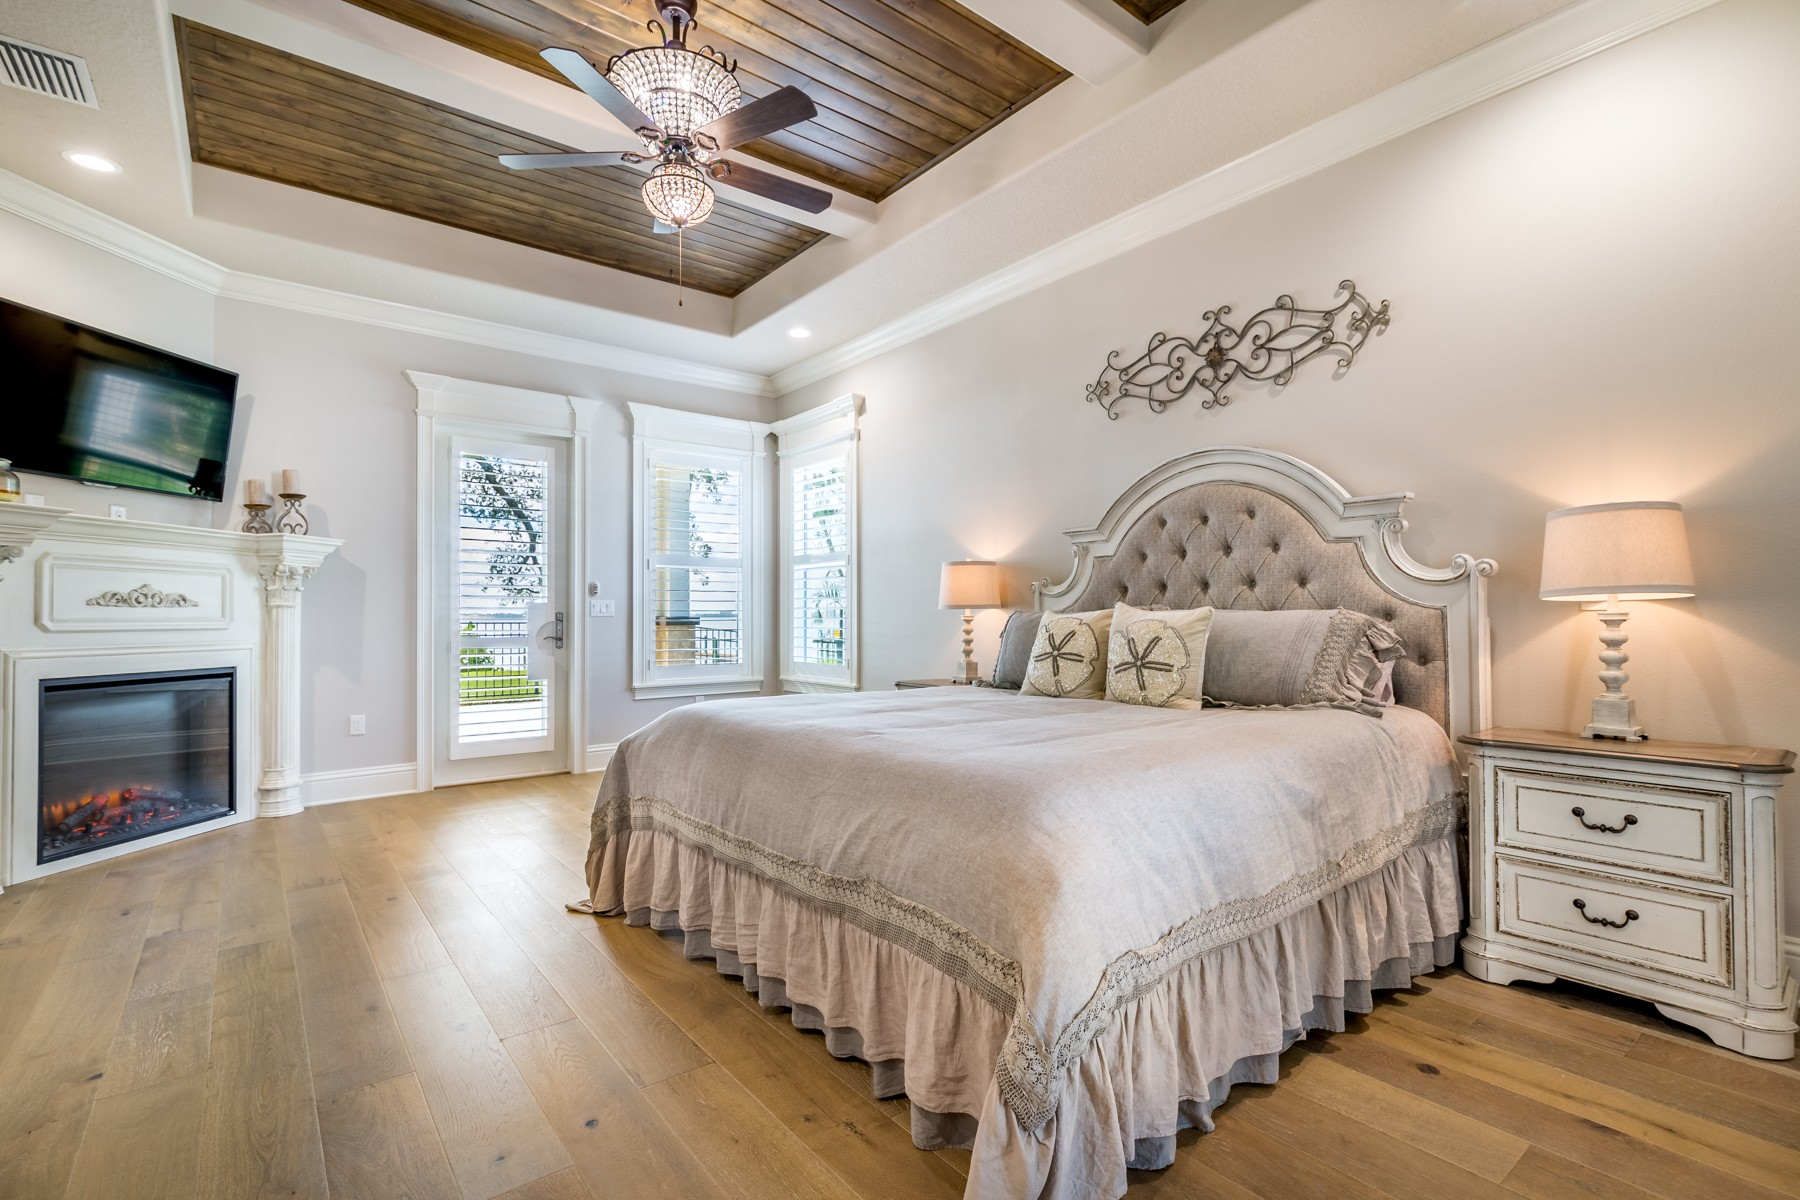 Additional photo for property listing at Breathtaking Riverfront Estate in Indialantic by the Sea 510 N Riverside Drive Indialantic, Florida 32903 United States